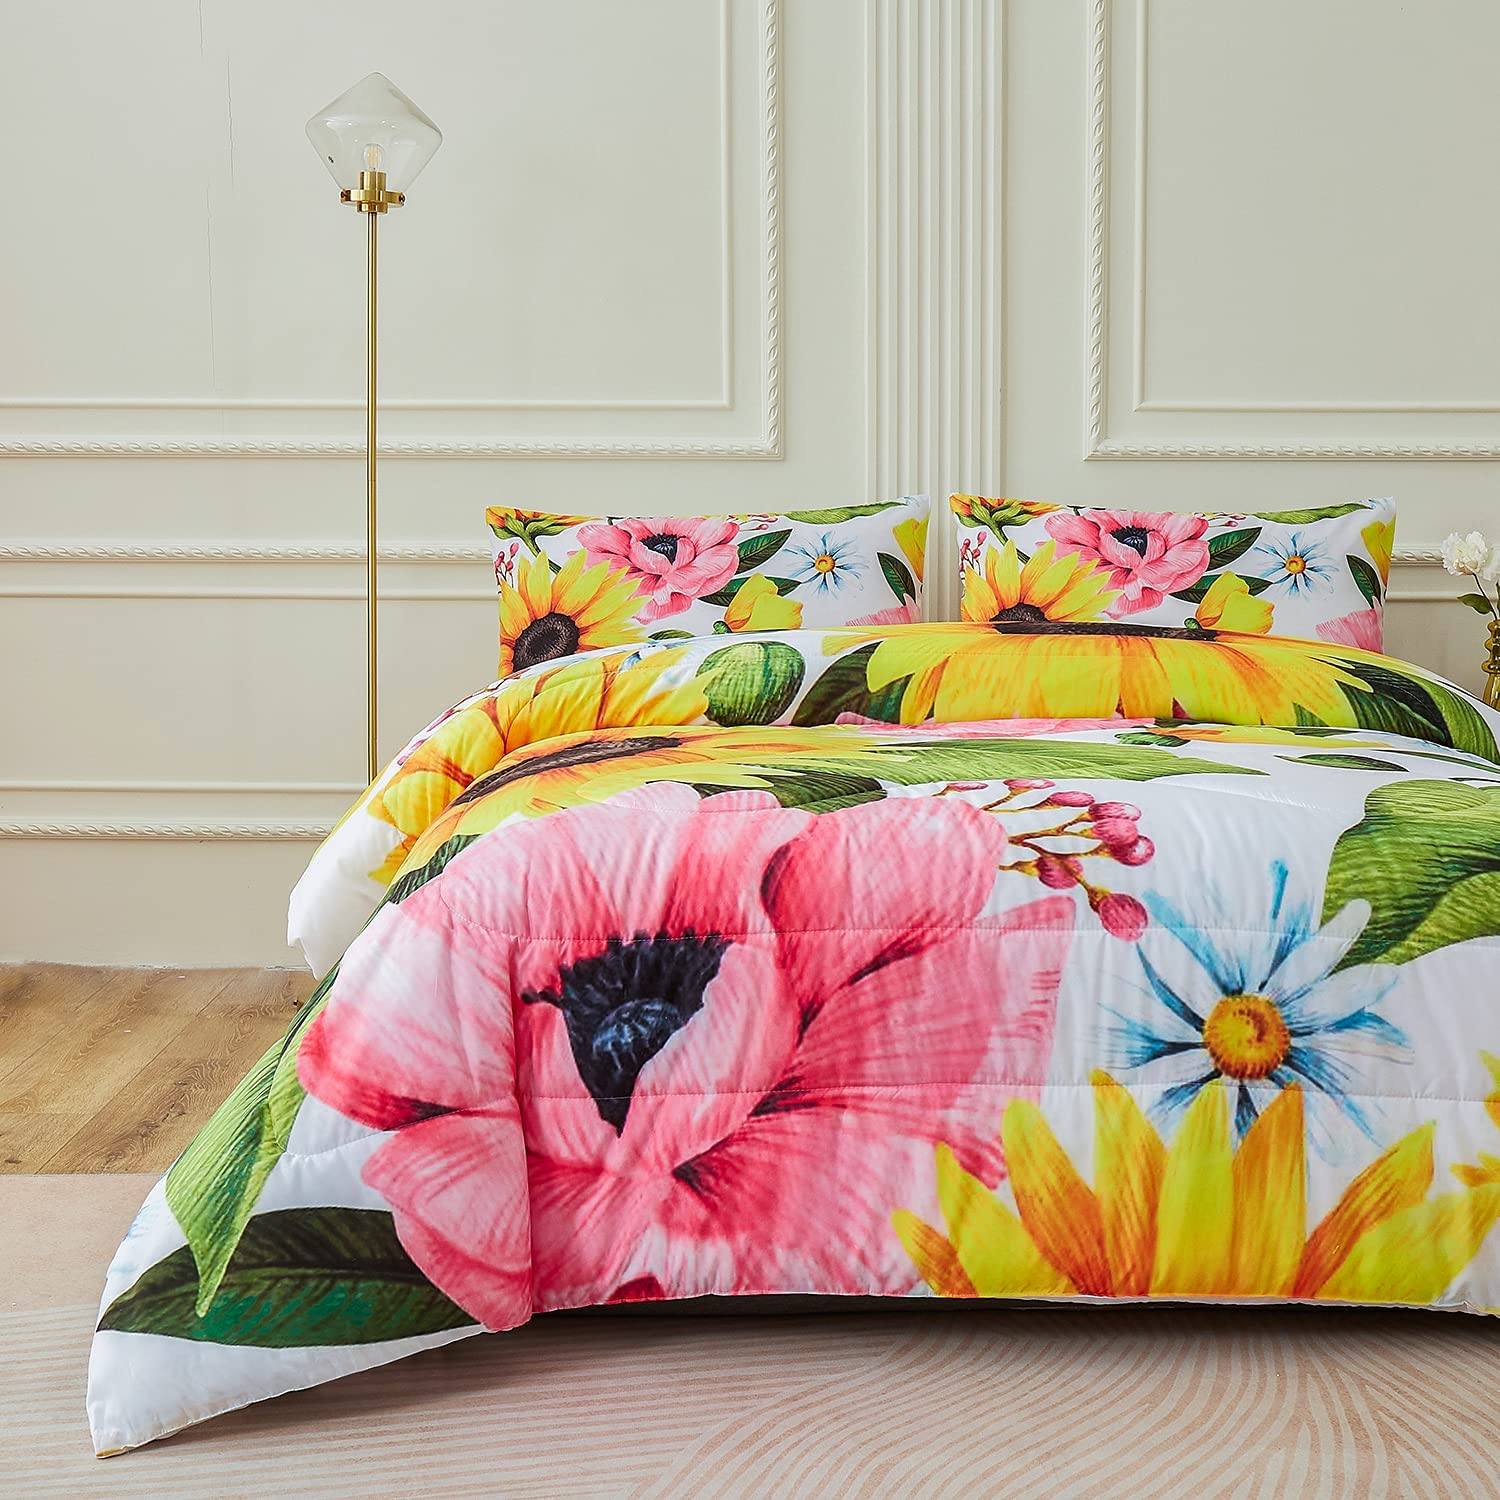 Twin Size Namoxpa Sunflower Comforter Sets,Beautiful Seamless Pattern with Sunflower Blue Butterflies on White Background,Decorative Bedding Comforter Sets with 2 Pillow Shams